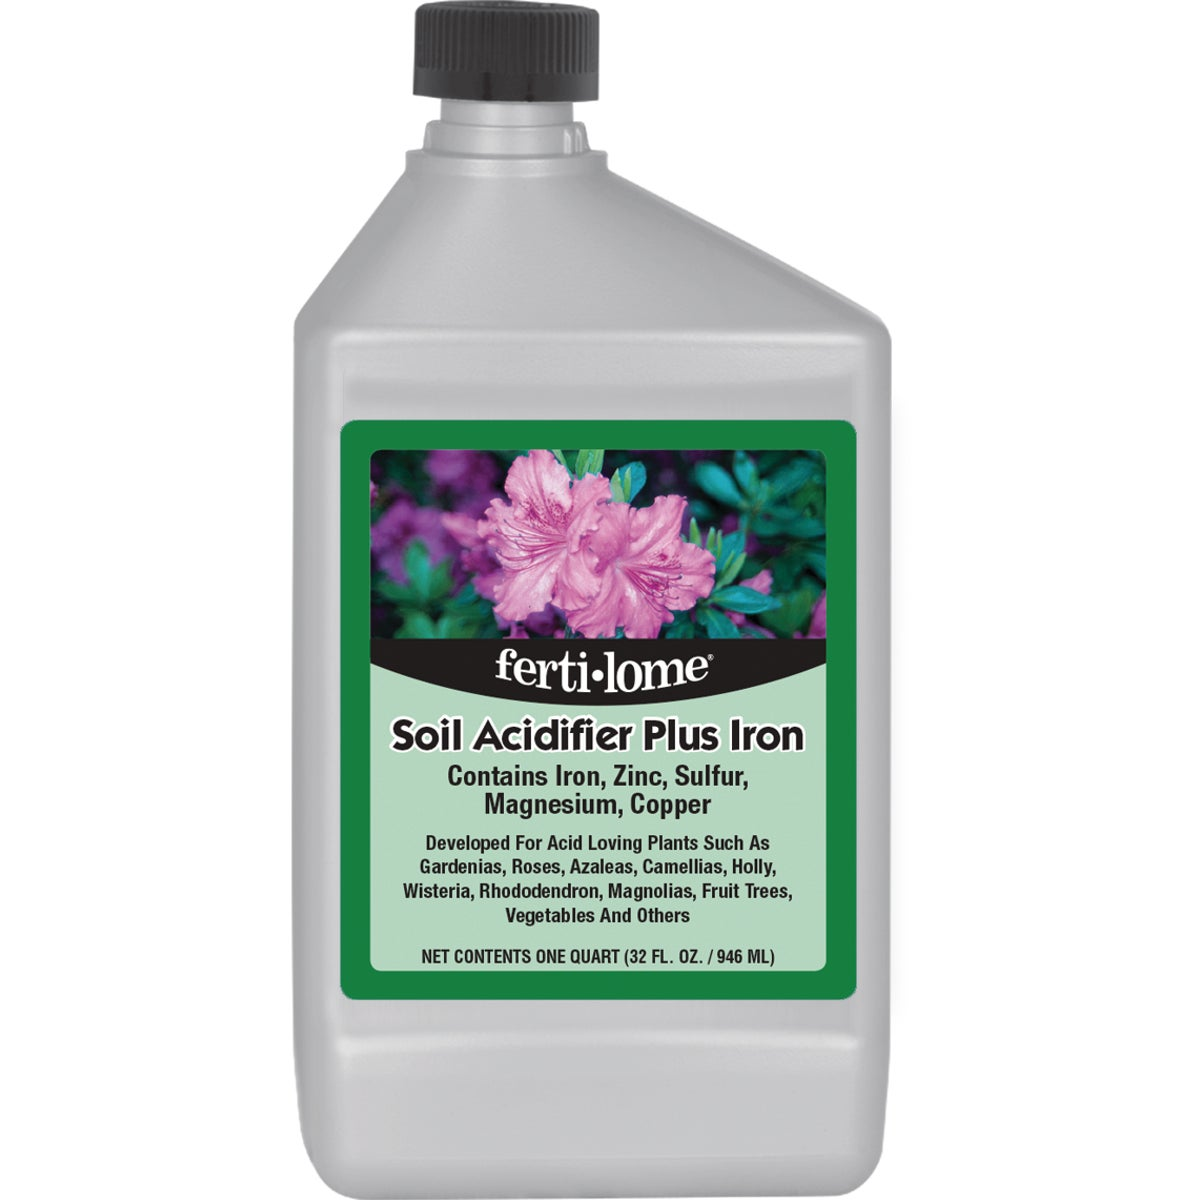 1QT SOIL ACIDIFIER - 10660 by Vpg Fertilome